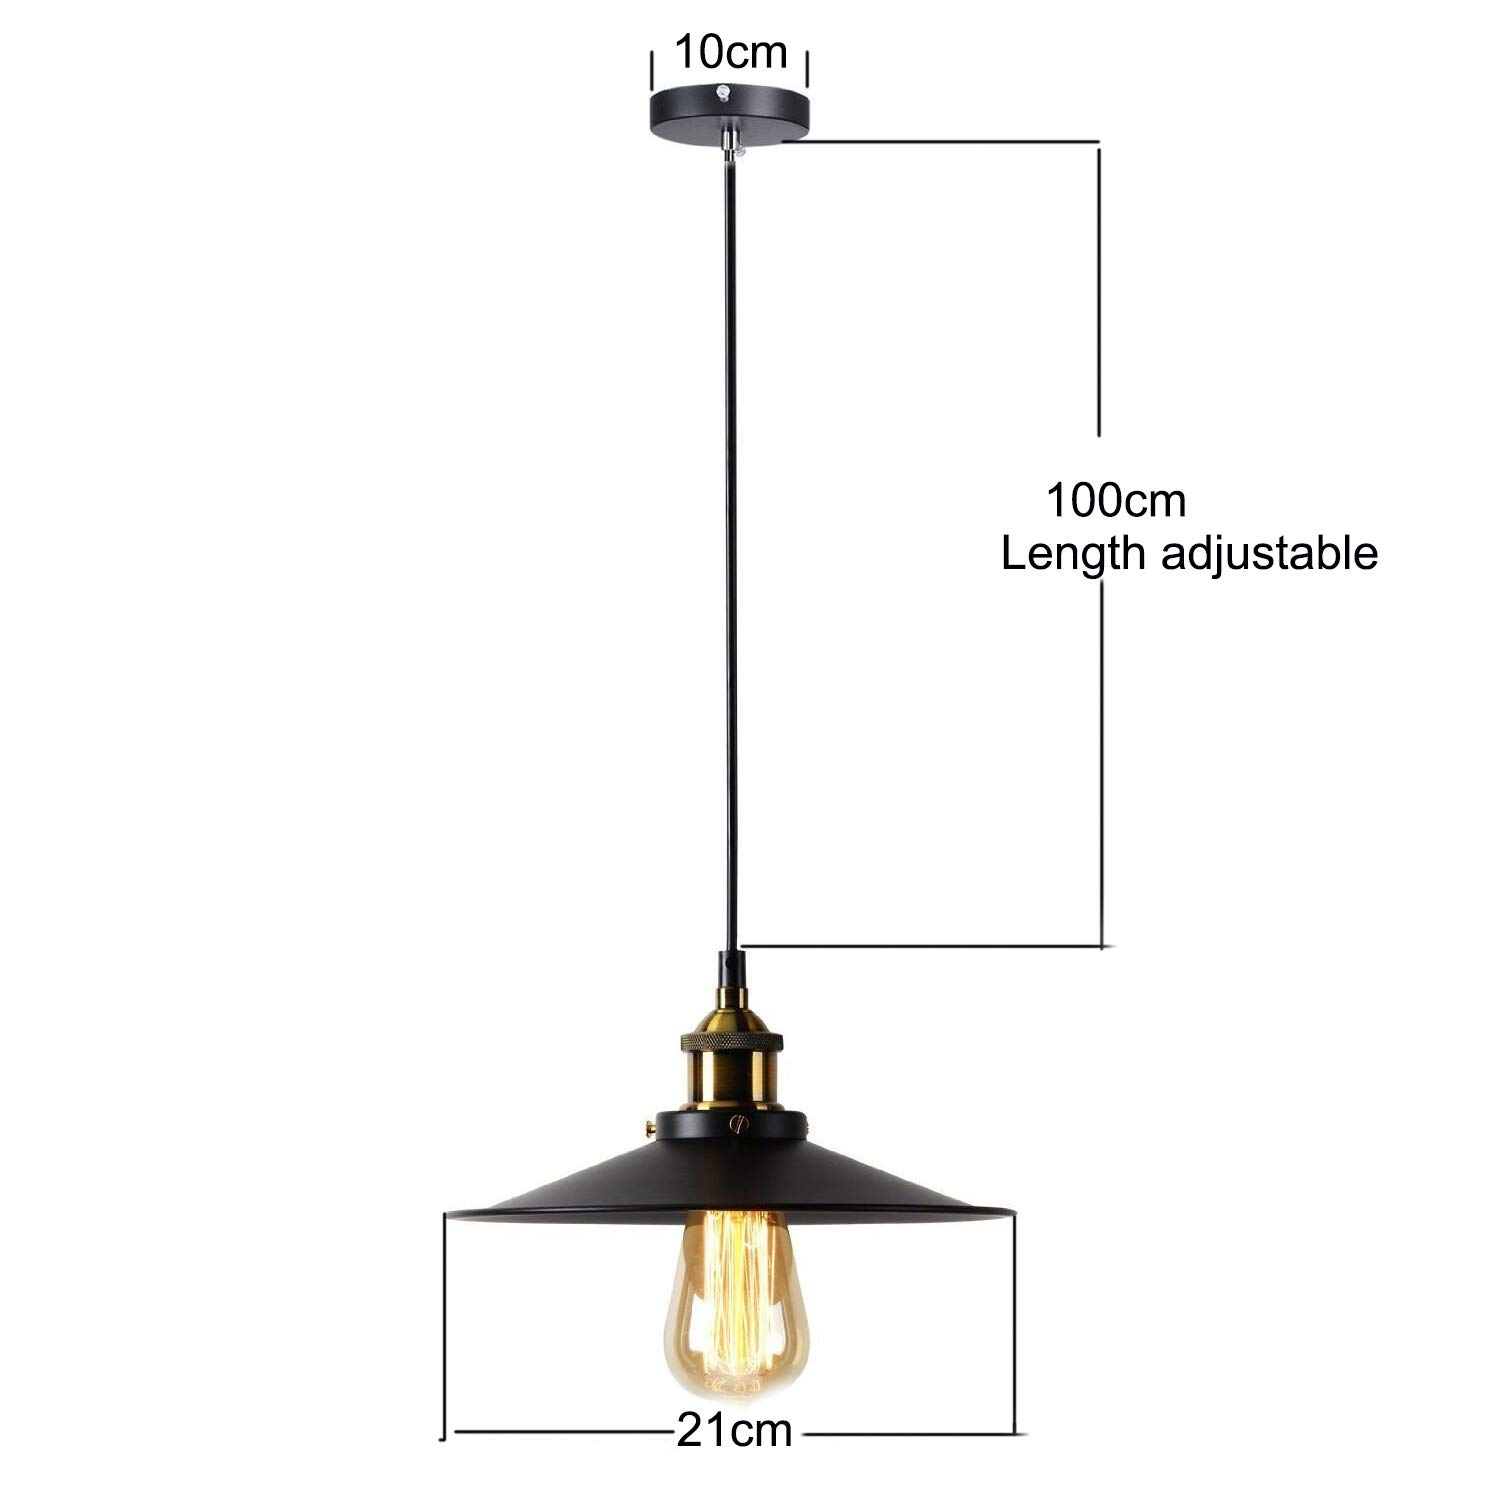 Lucoss Wall Sconces Light 2 Packs Bulb Not Included E26 Base Black Industrial Vintage Edison Wall Lamp Fixture Simplicity Steel Finished